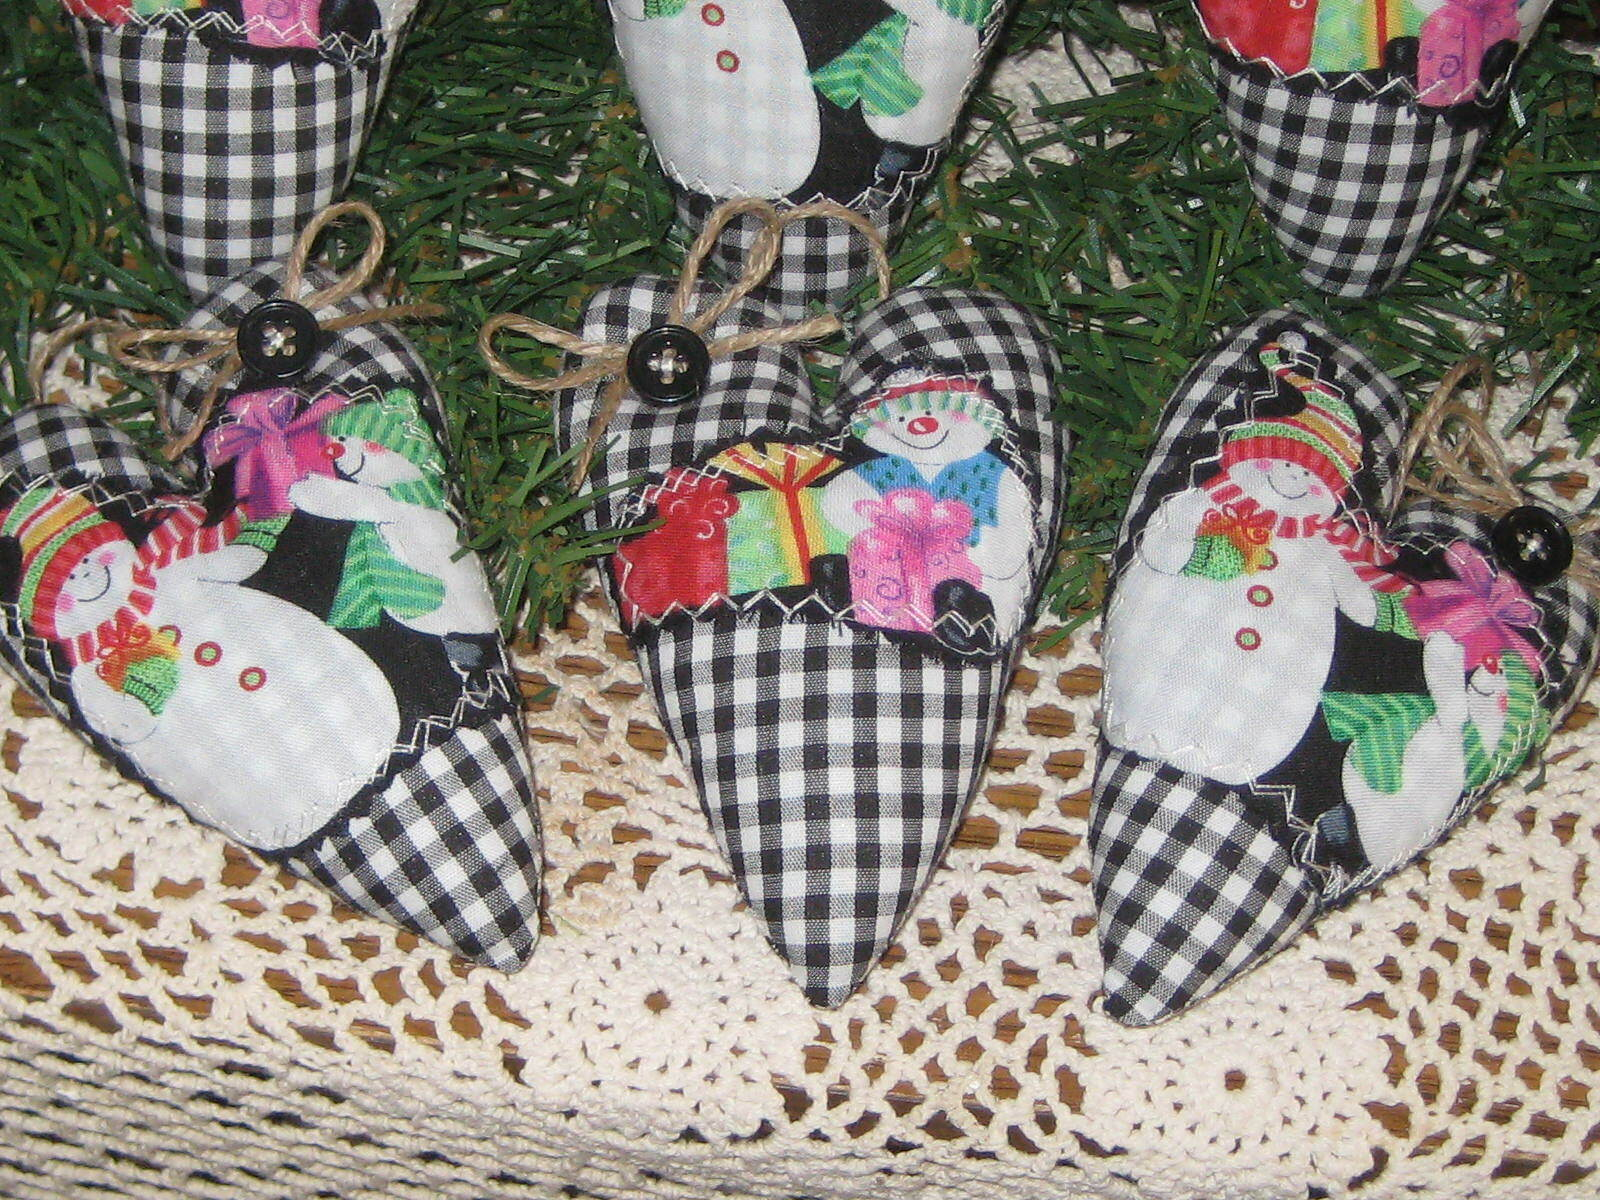 6 Snowmen Hearts Gingham Fabric Appliqued Country Christmas Decor Tree Ornaments - $21.95